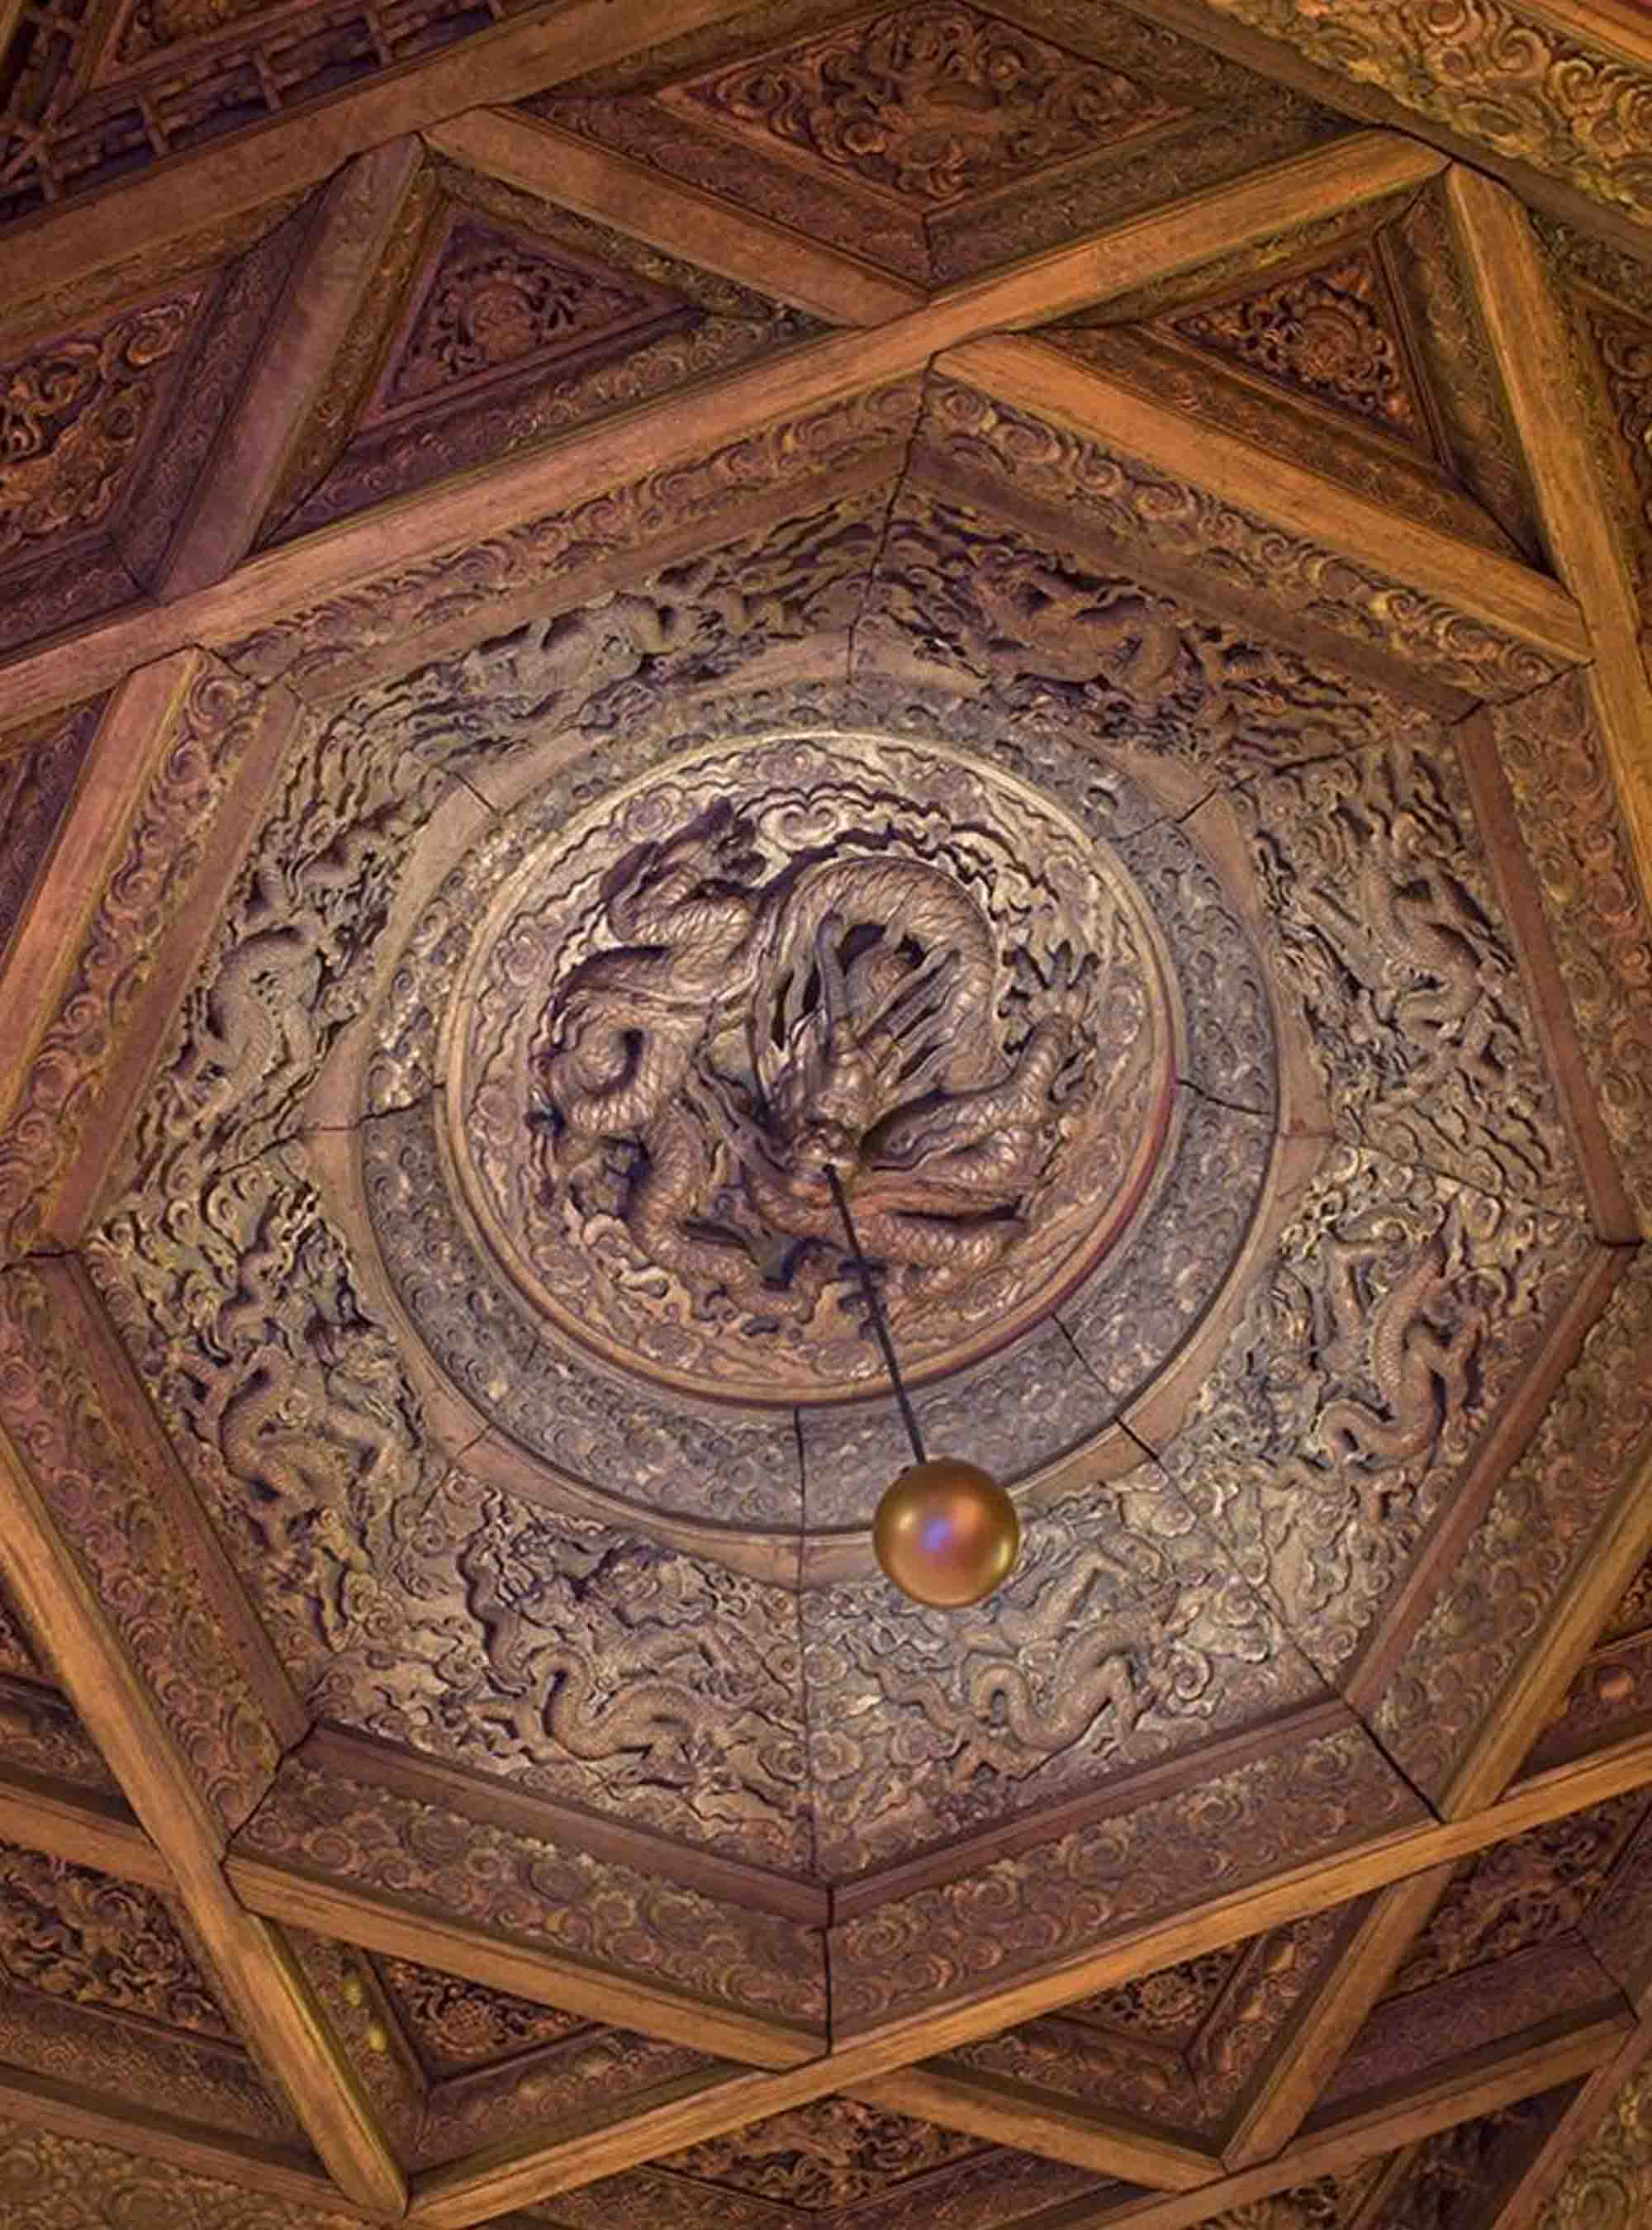 Dragon Ceiling Exhibit At Nelson Atkins Museum Of Art